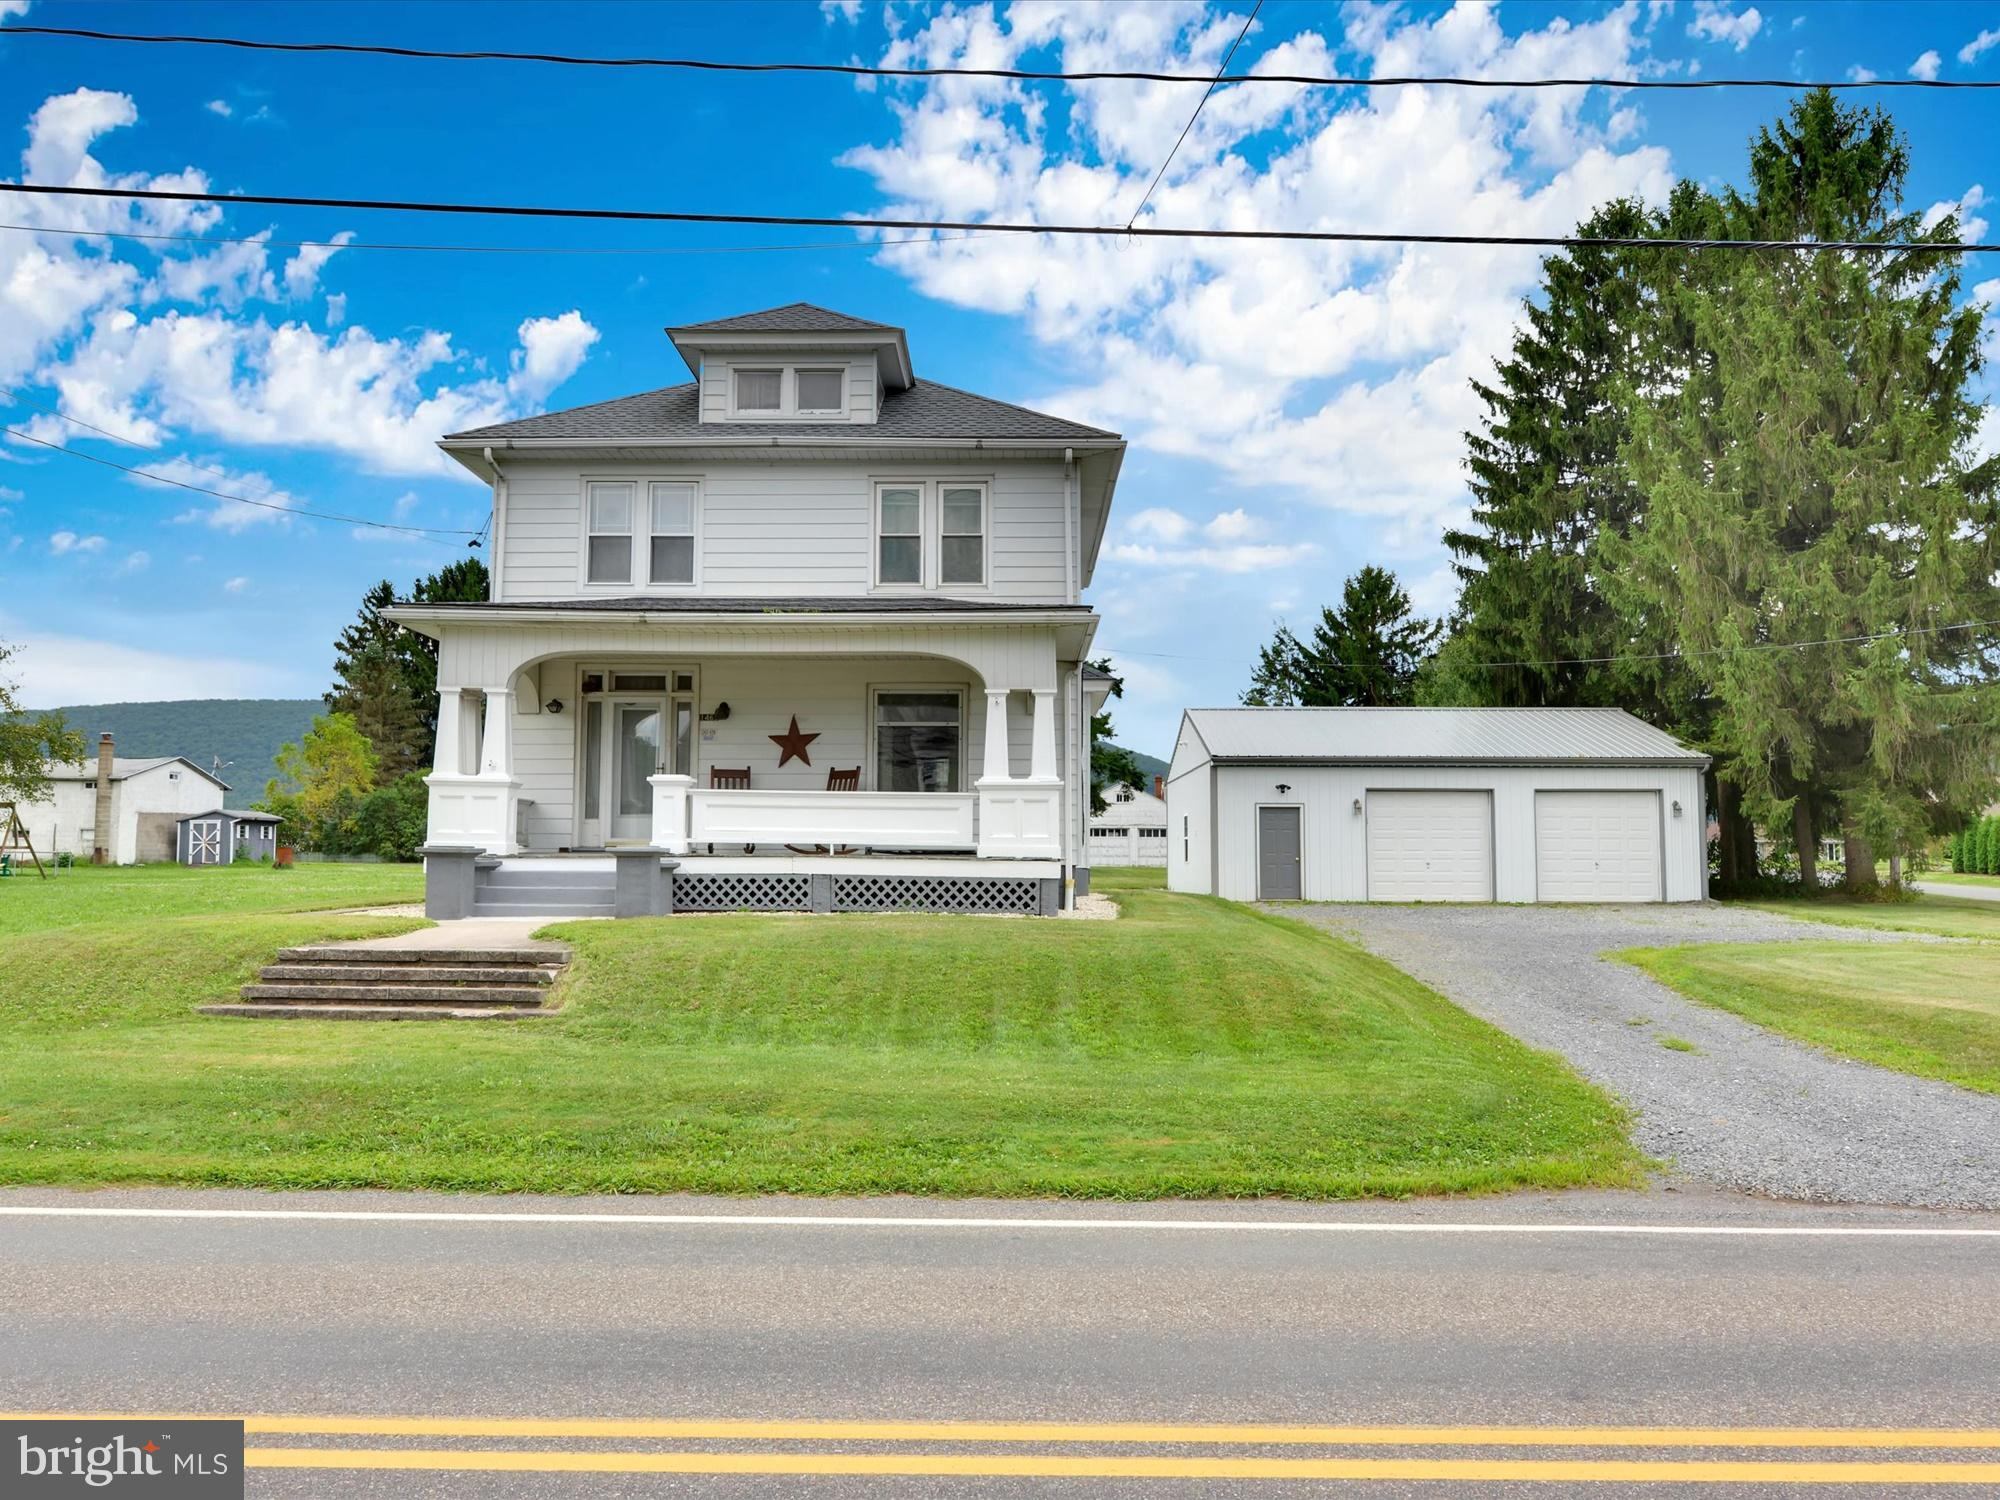 1465 W MAIN STREET, VALLEY VIEW, PA 17983